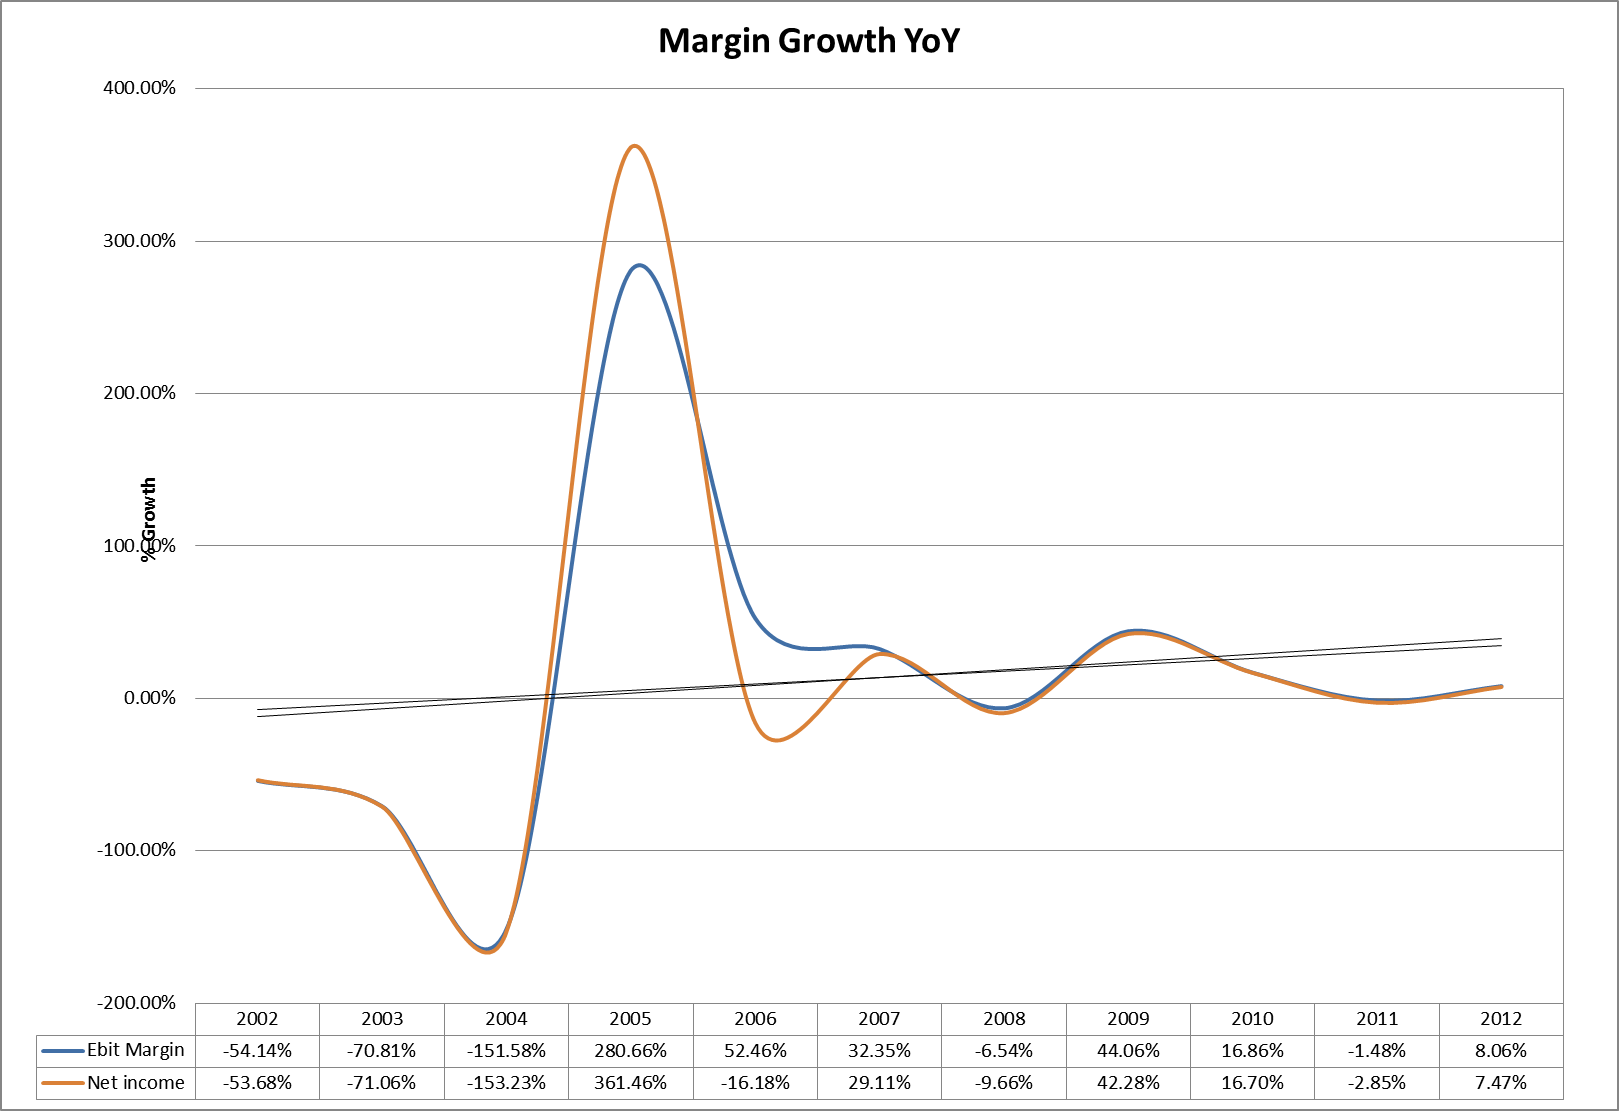 Margin Growth Yoy